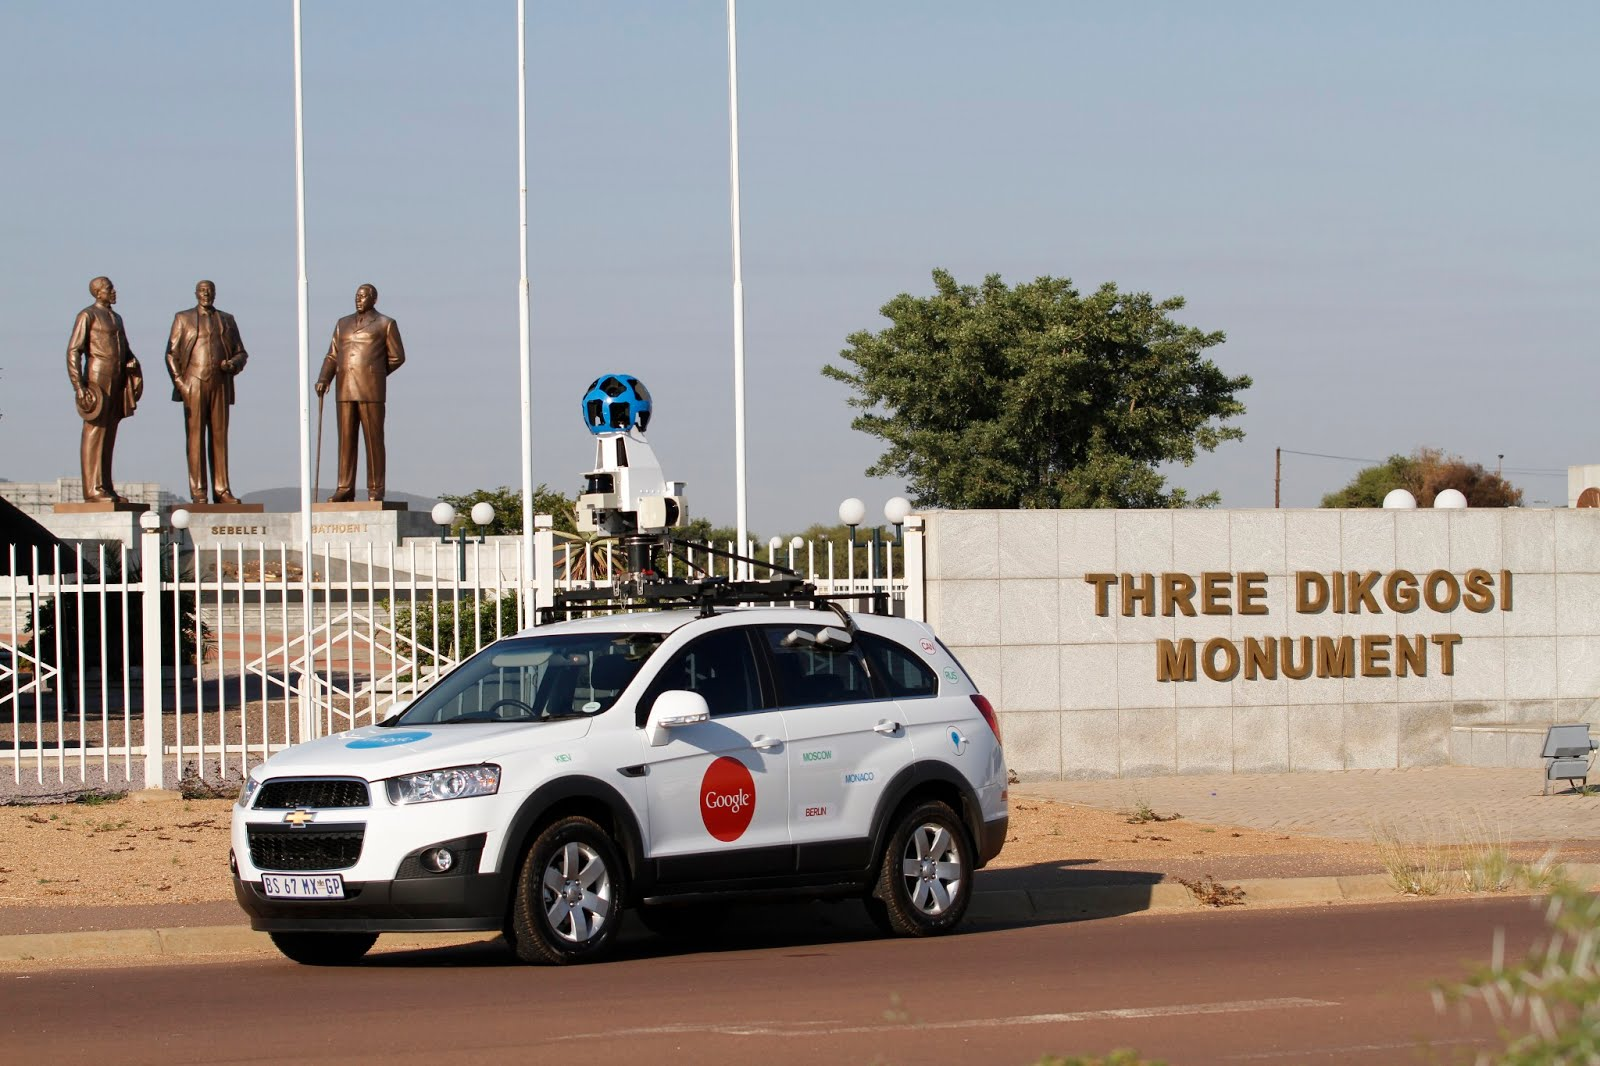 Street View on Google Maps now live in Botswana - Innovation ... on maps google address, google street view car, google send to car, maps driving directions by car,